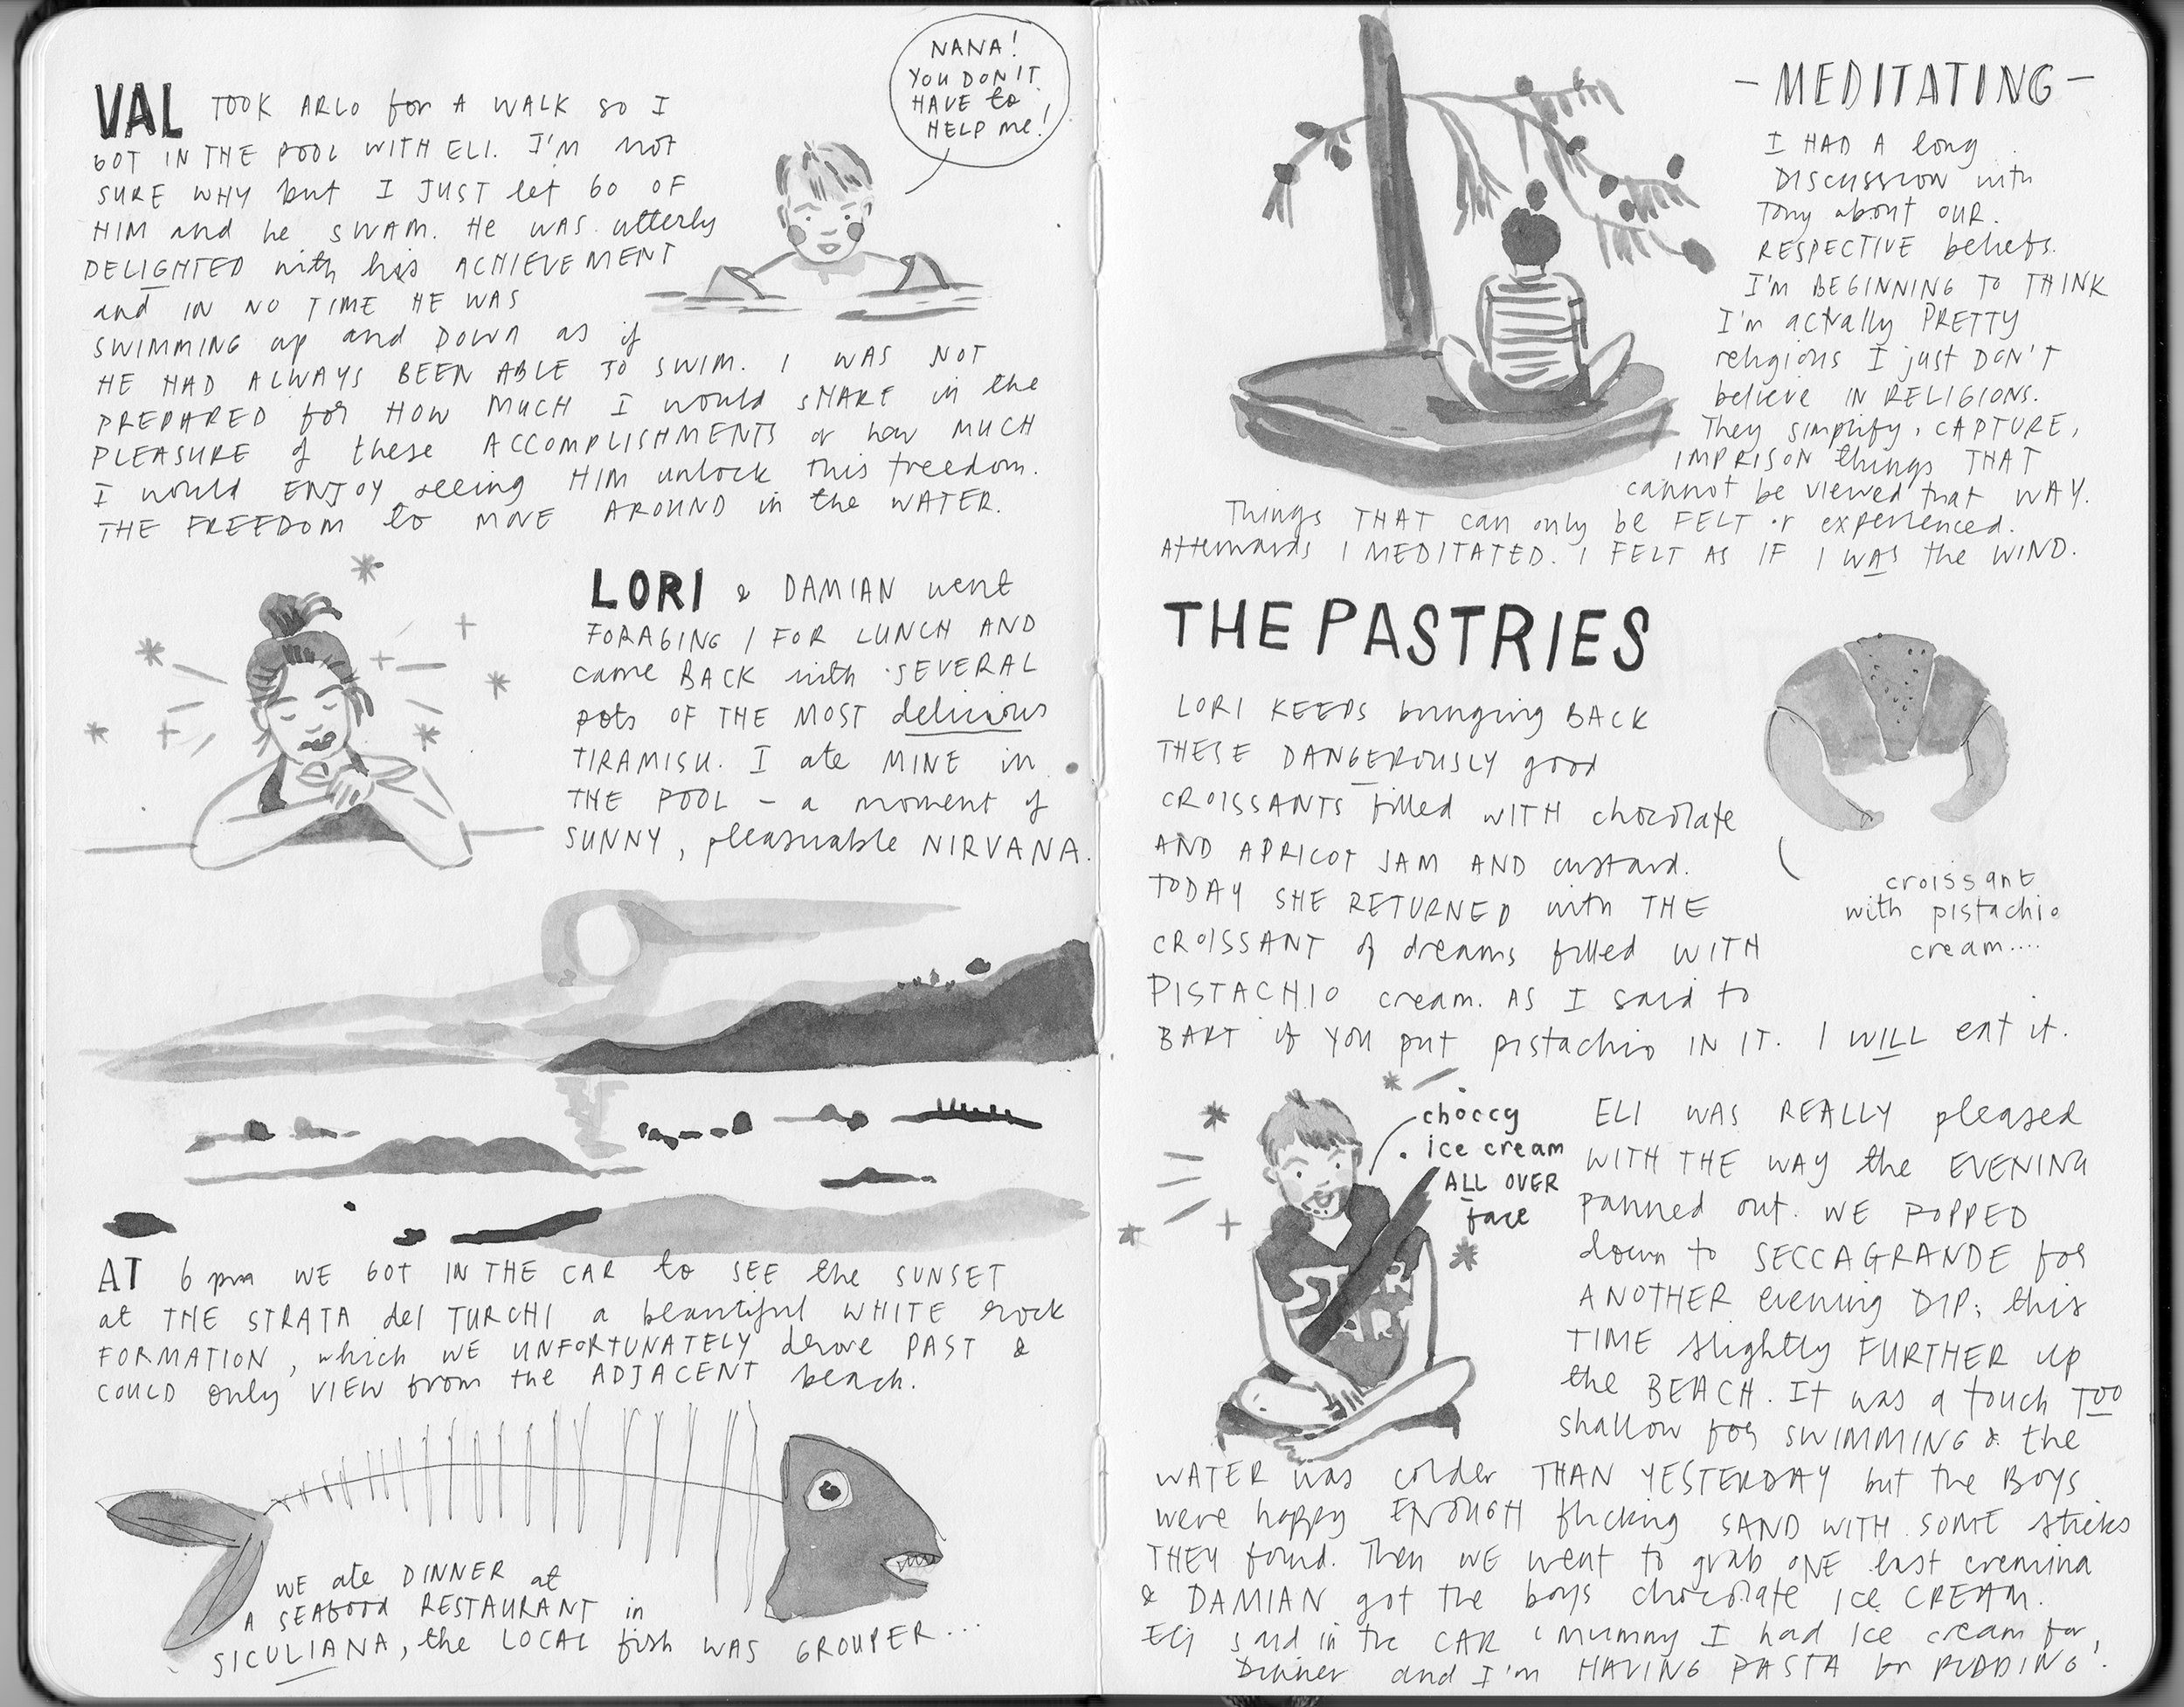 Illustrated Journal about Sicily 5